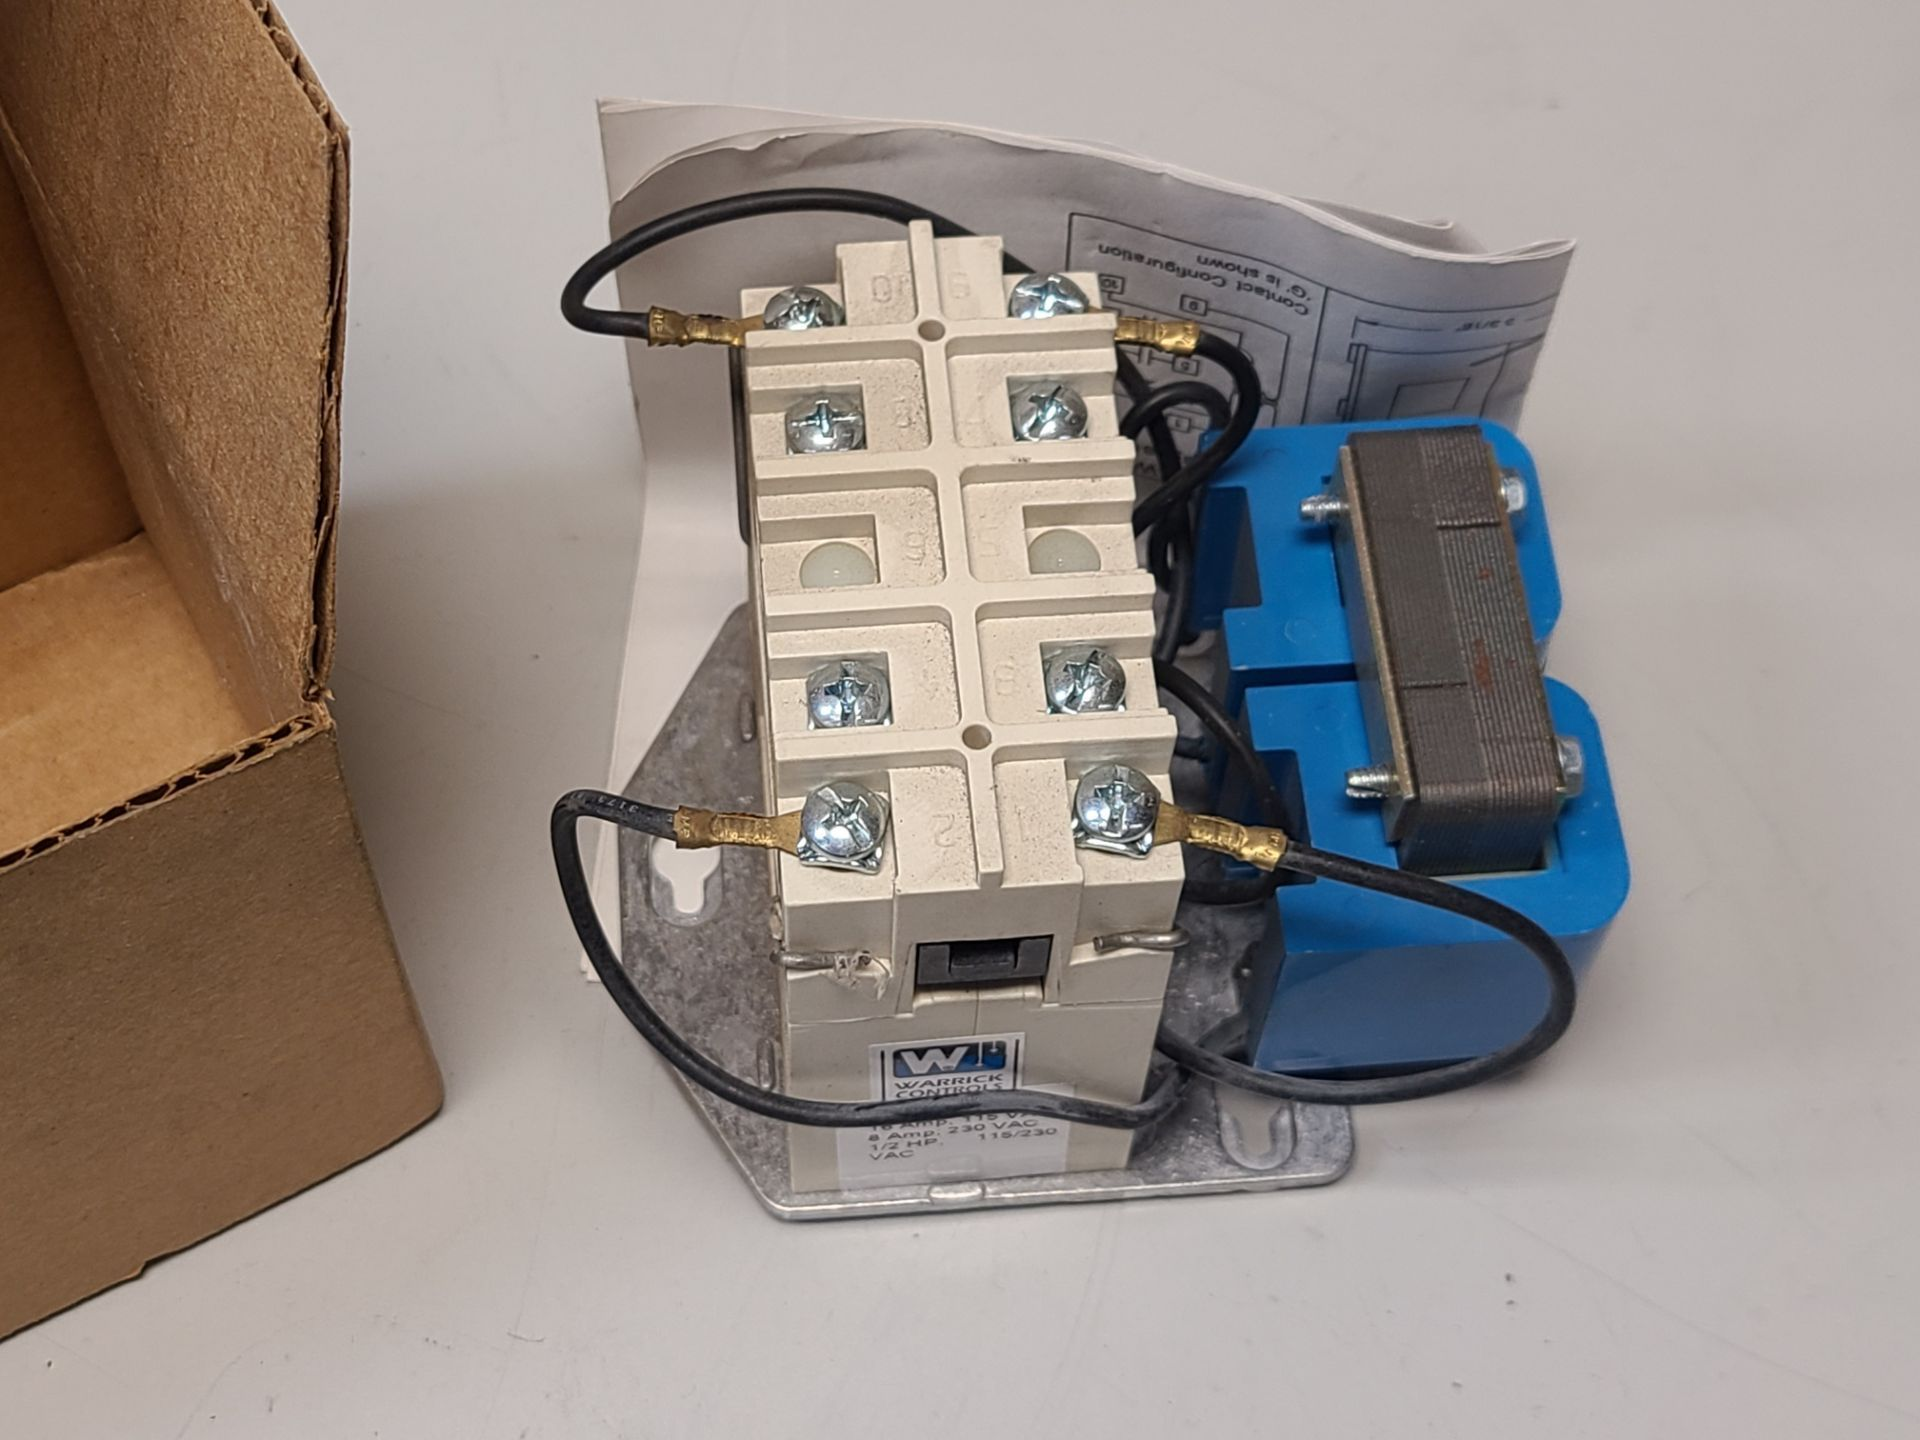 NEW WARRICK/GEMS CONTROL RELAY - Image 2 of 4